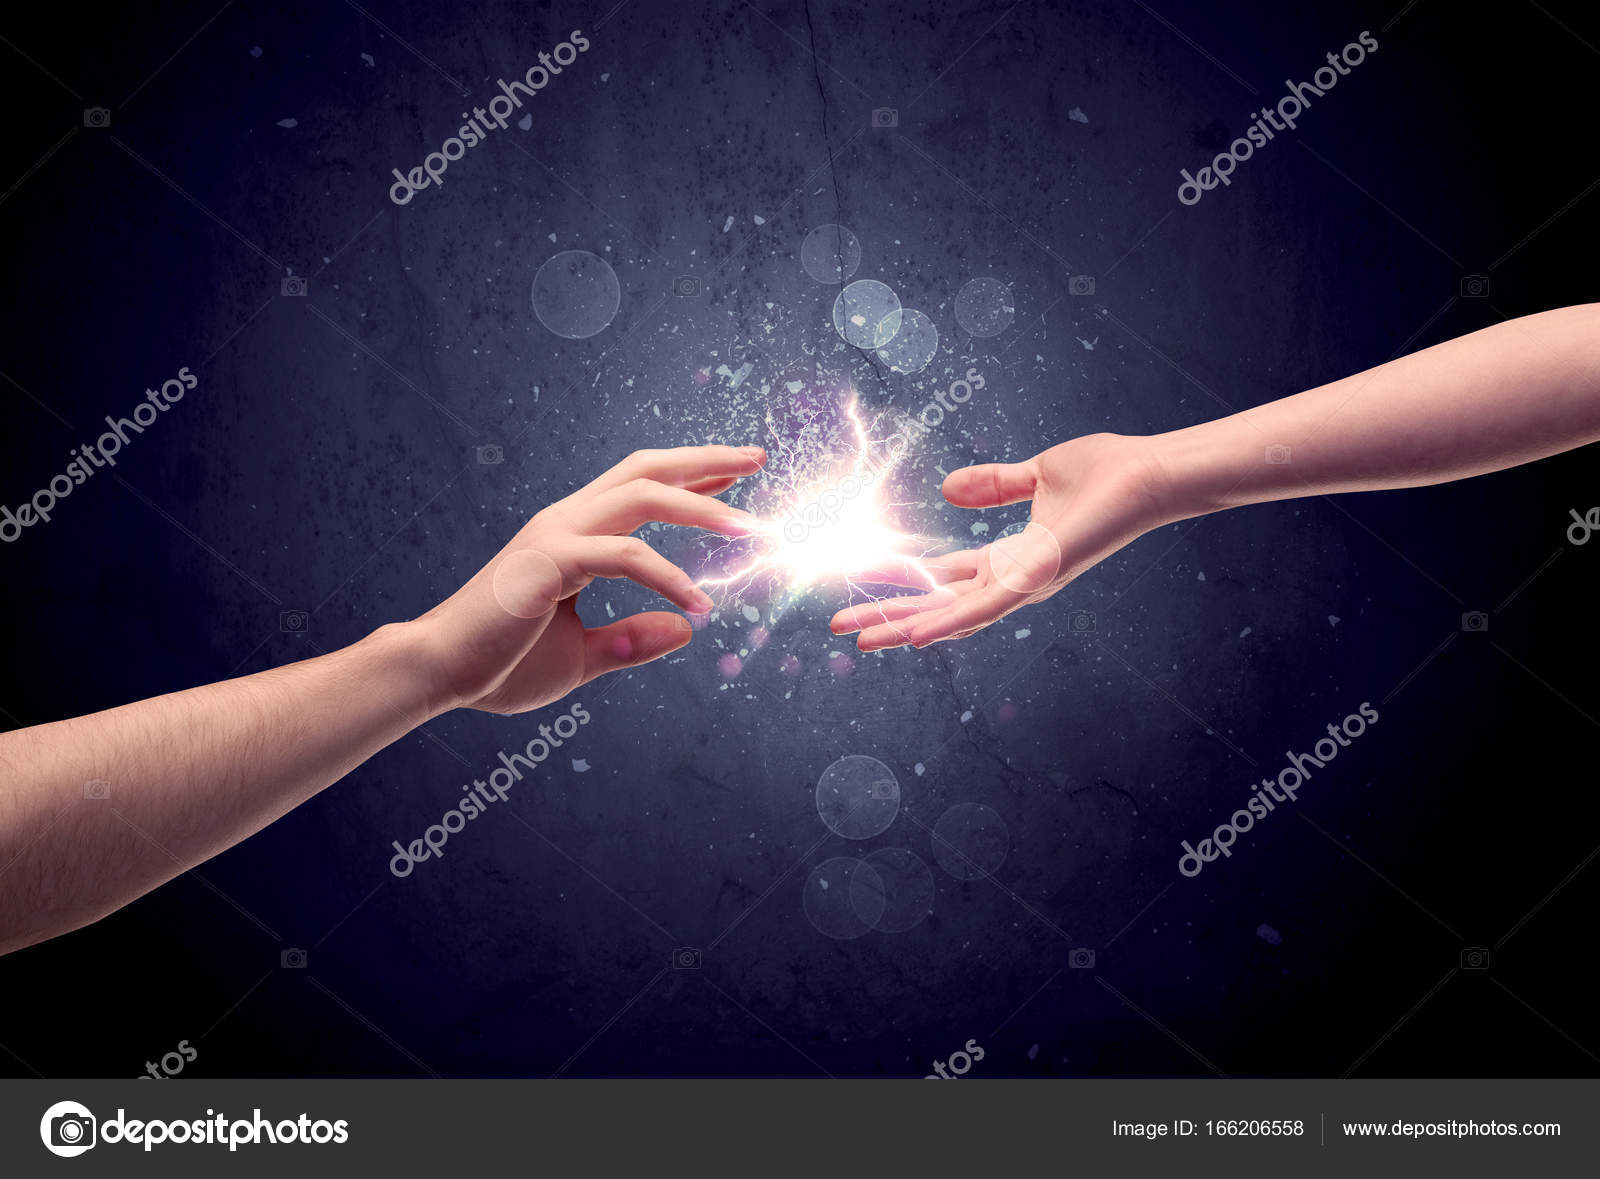 Hands reaching to light a spark u2014 Stock Photo & Hands reaching to light a spark u2014 Stock Photo © ra2studio #166206558